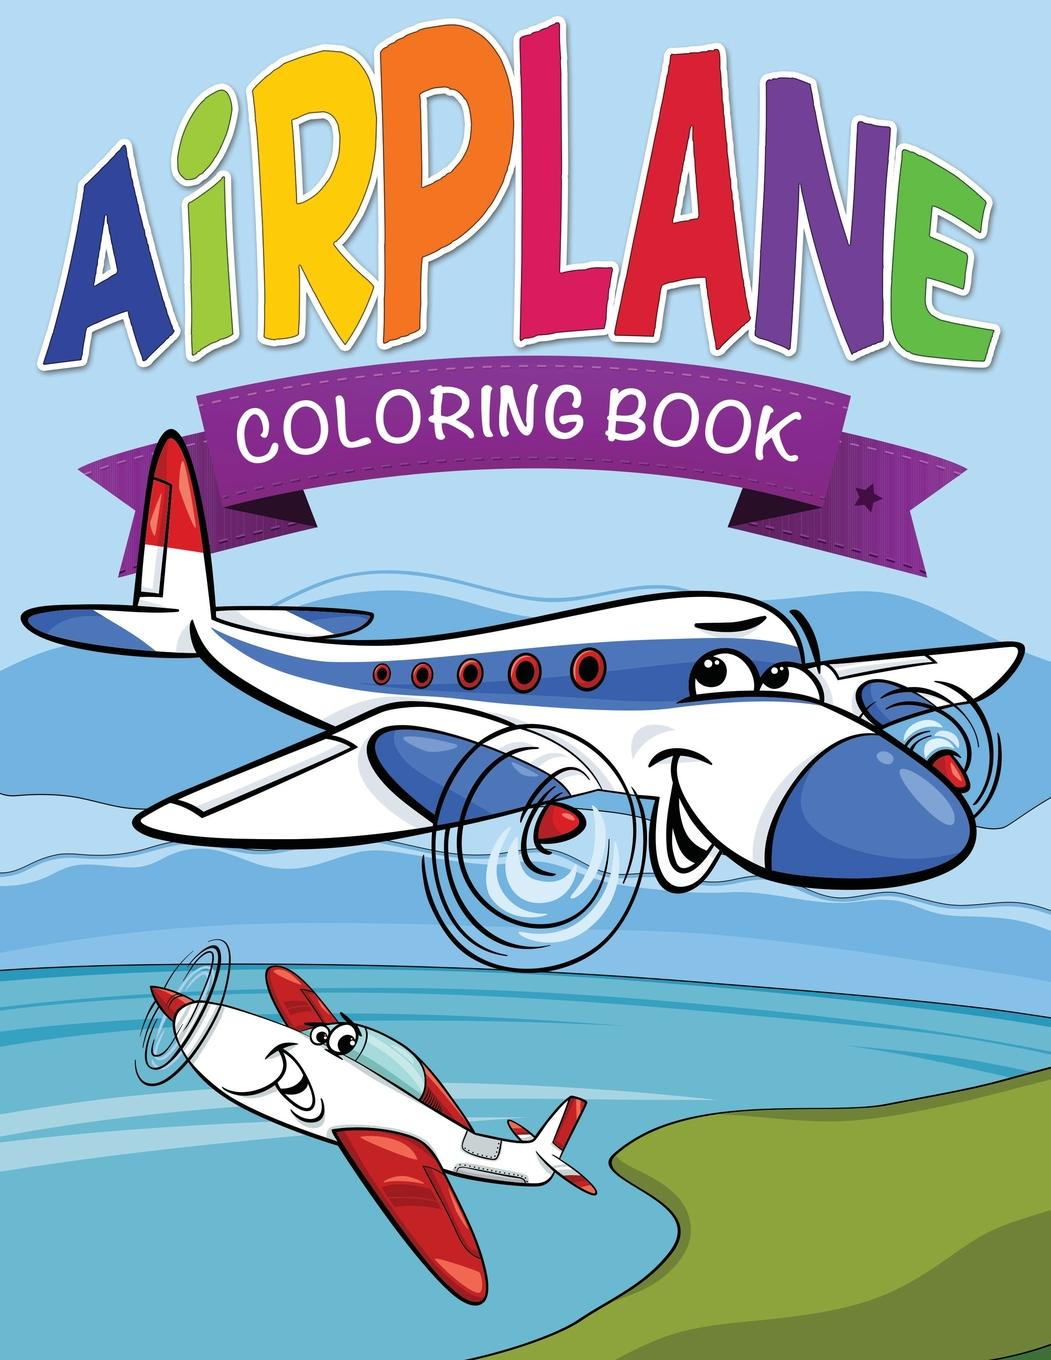 - Airplane Coloring Book For Kids (Paperback) - Walmart.com - Walmart.com